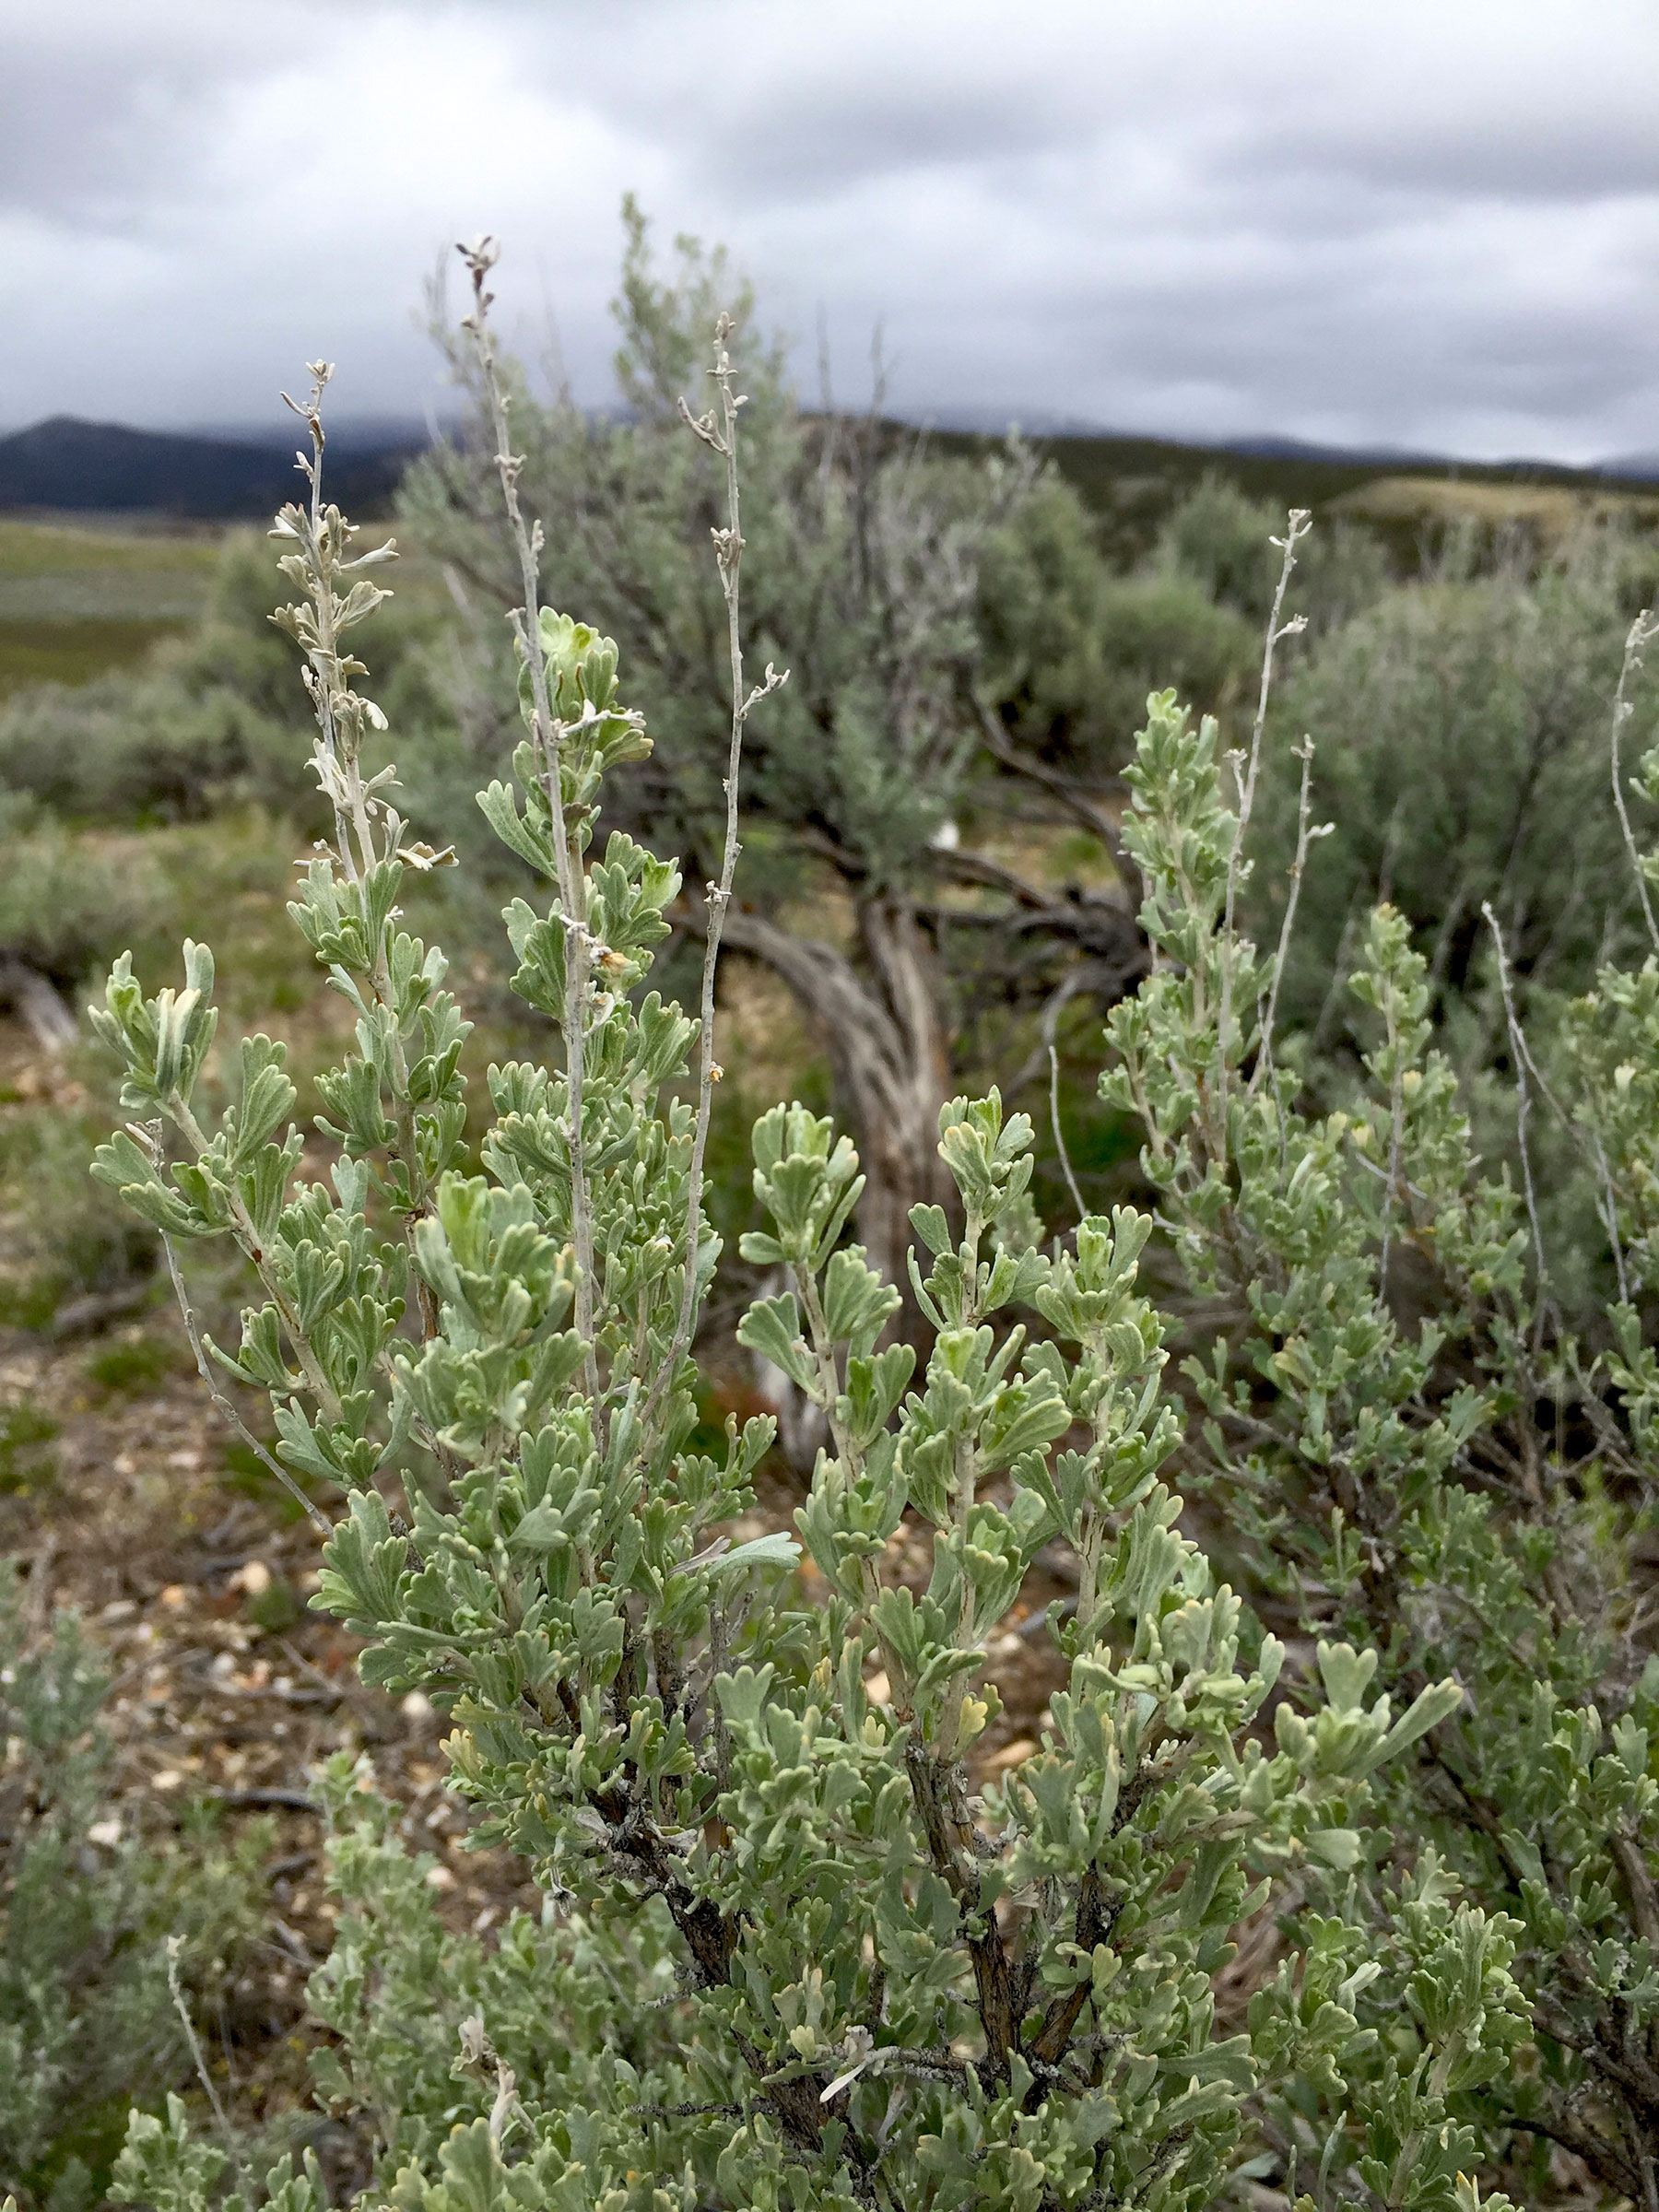 The fatter and healthier the sagebrush the better the canopy to protect sage-grouse from predators as the birds move along the ground or settle down to nest. Hannah Ryan